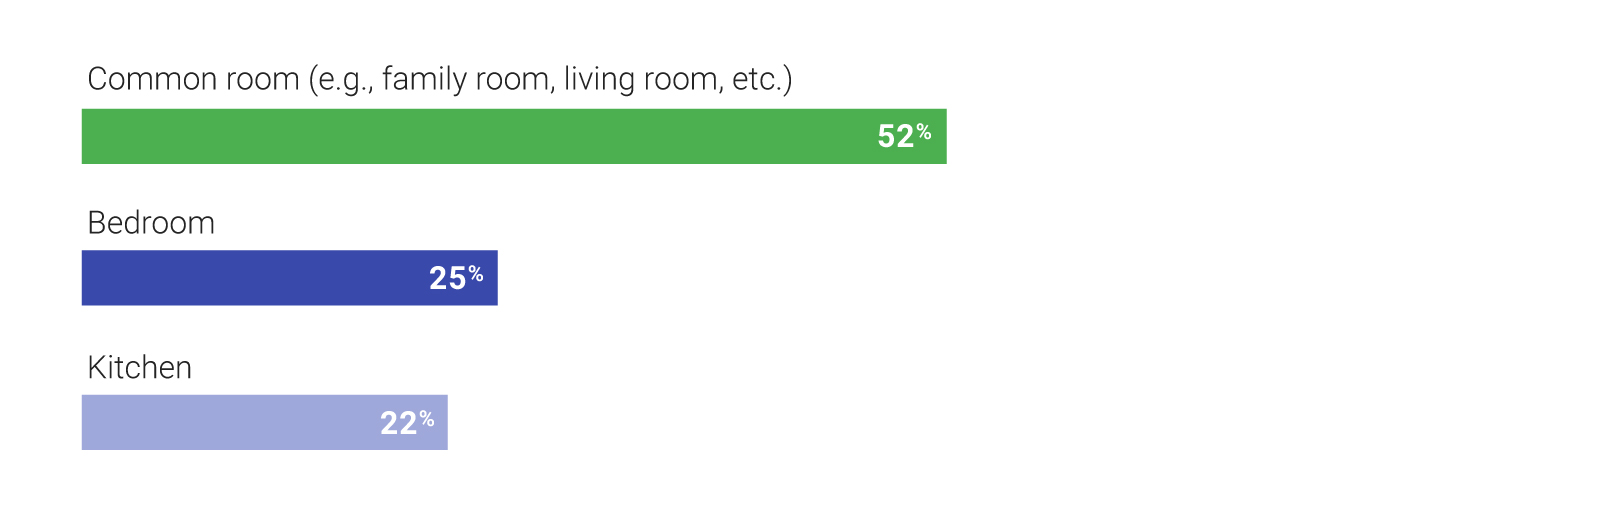 52% of people keep their voice-activated devices in common rooms; 25% of people keep voice-activated devices in the bedroom; and 22% keep voice-activated devices in the kitchen